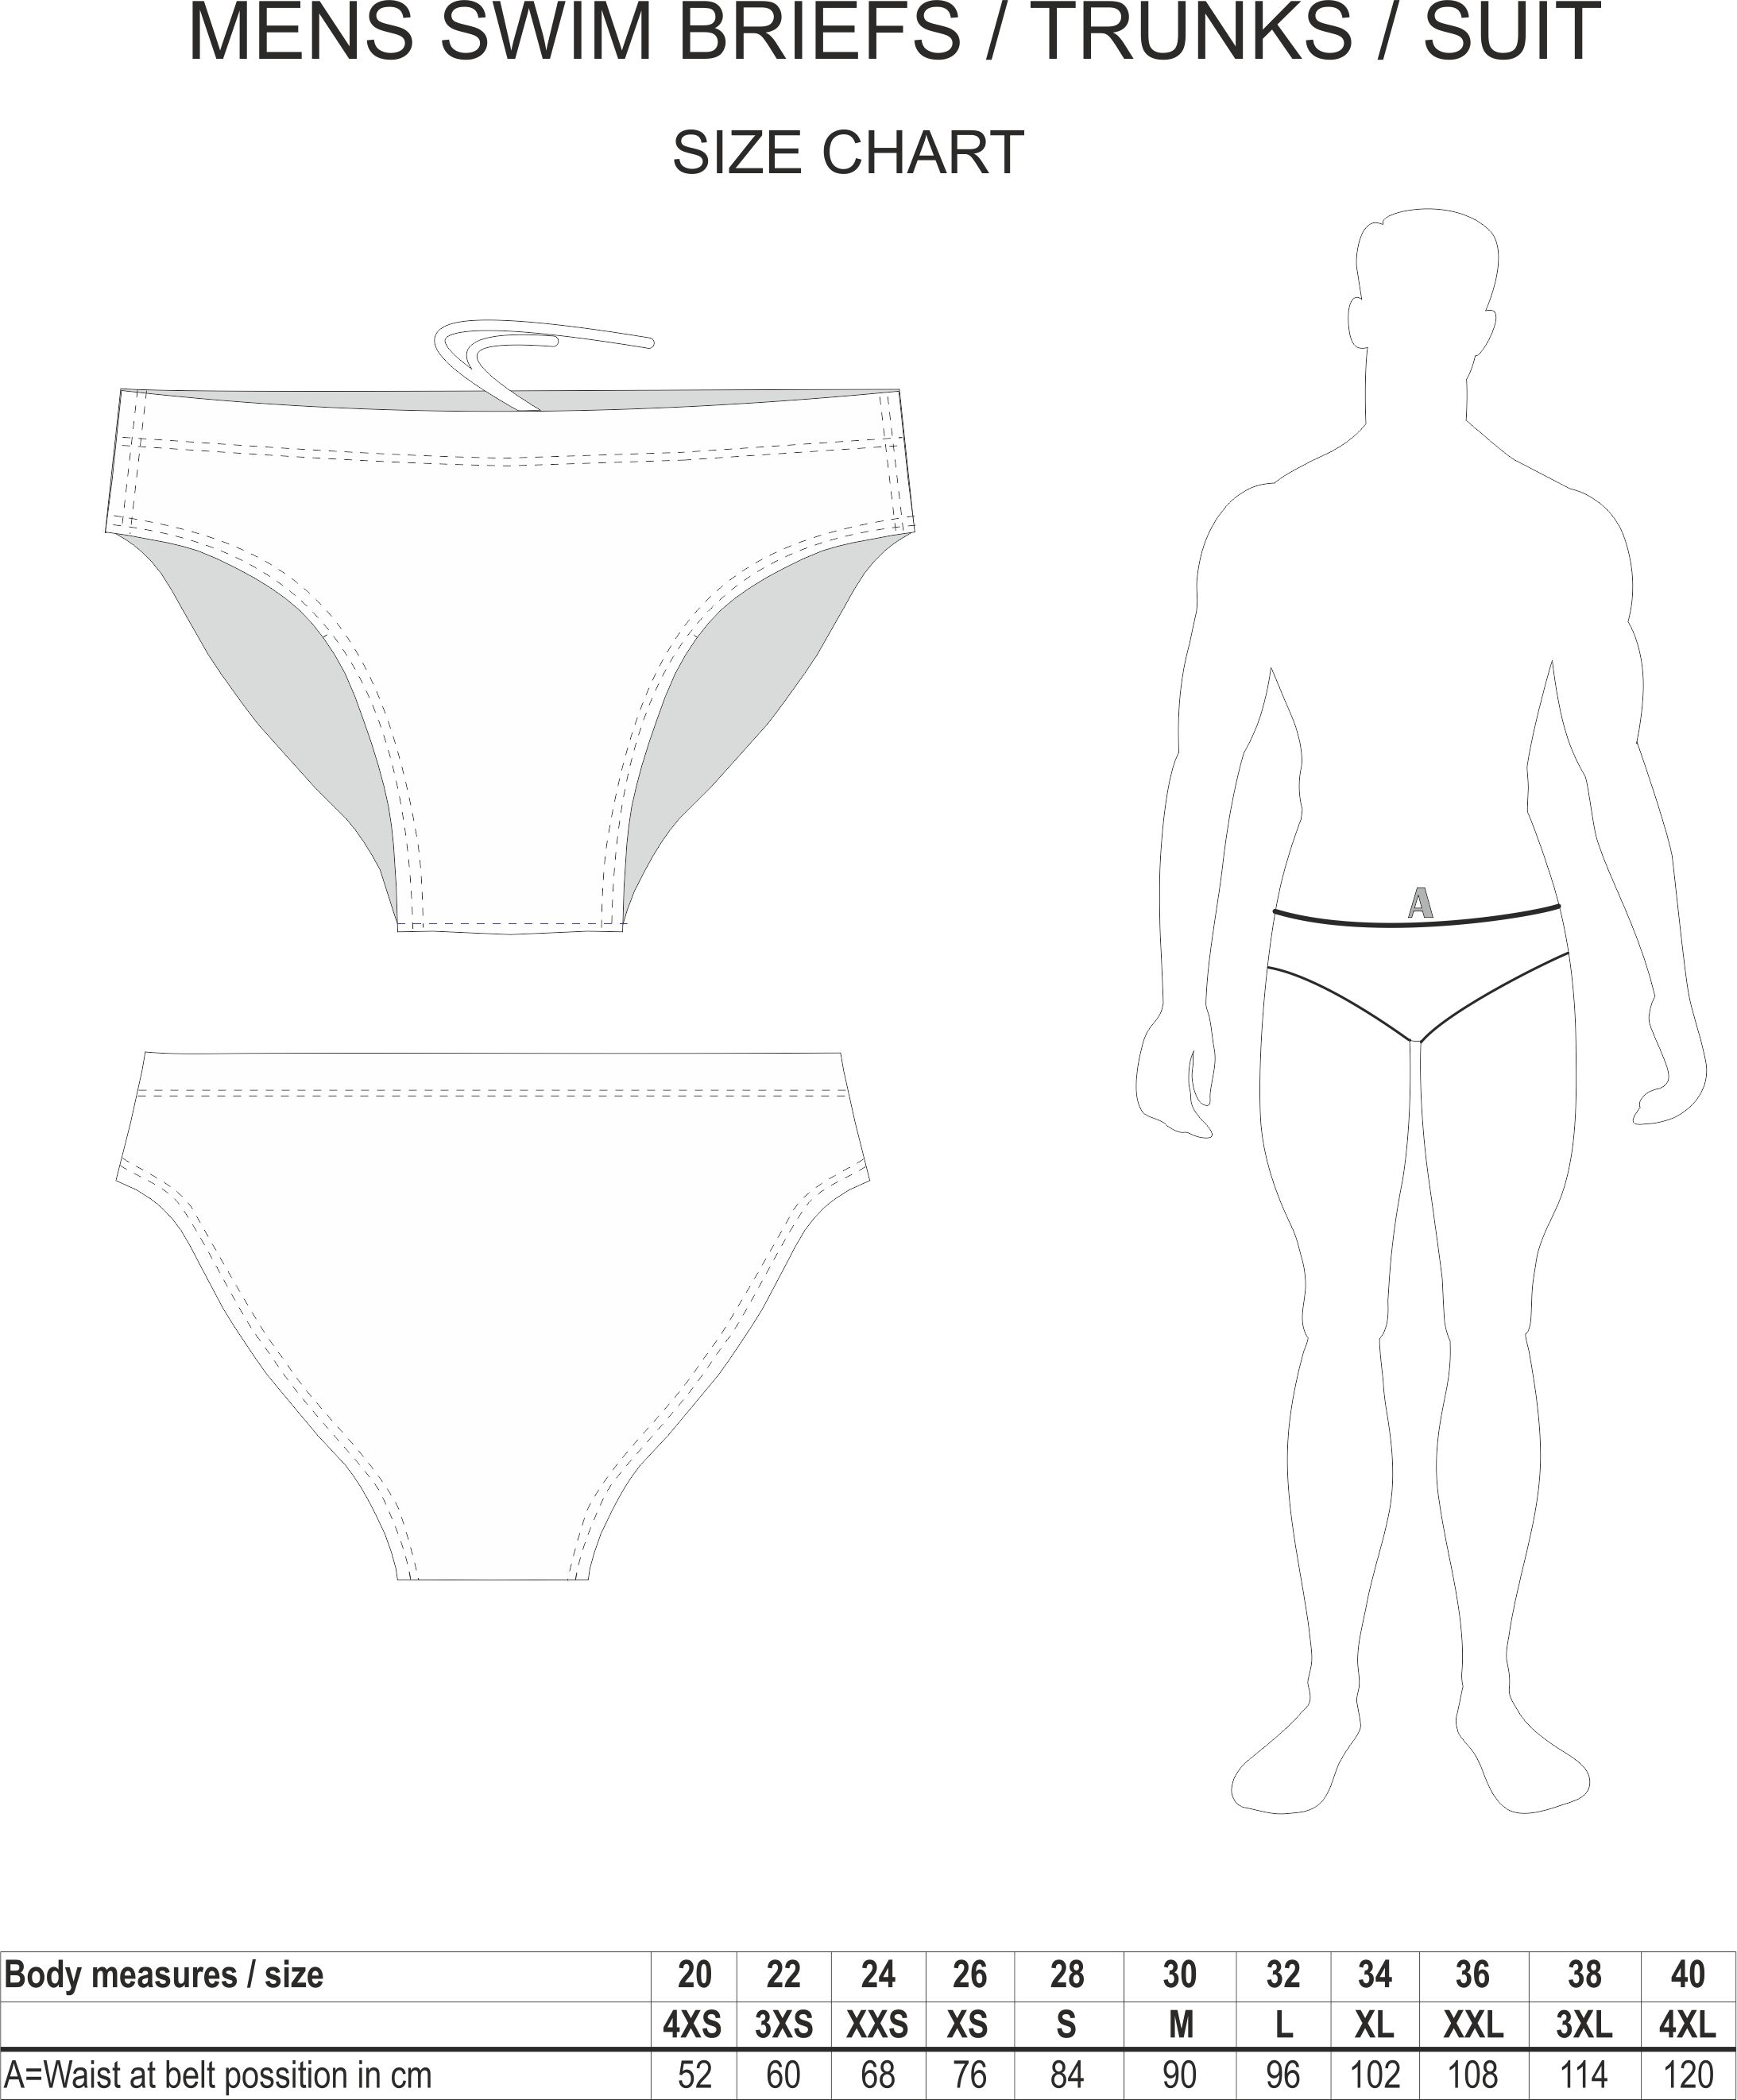 Mens Swimming Brief Size Chart